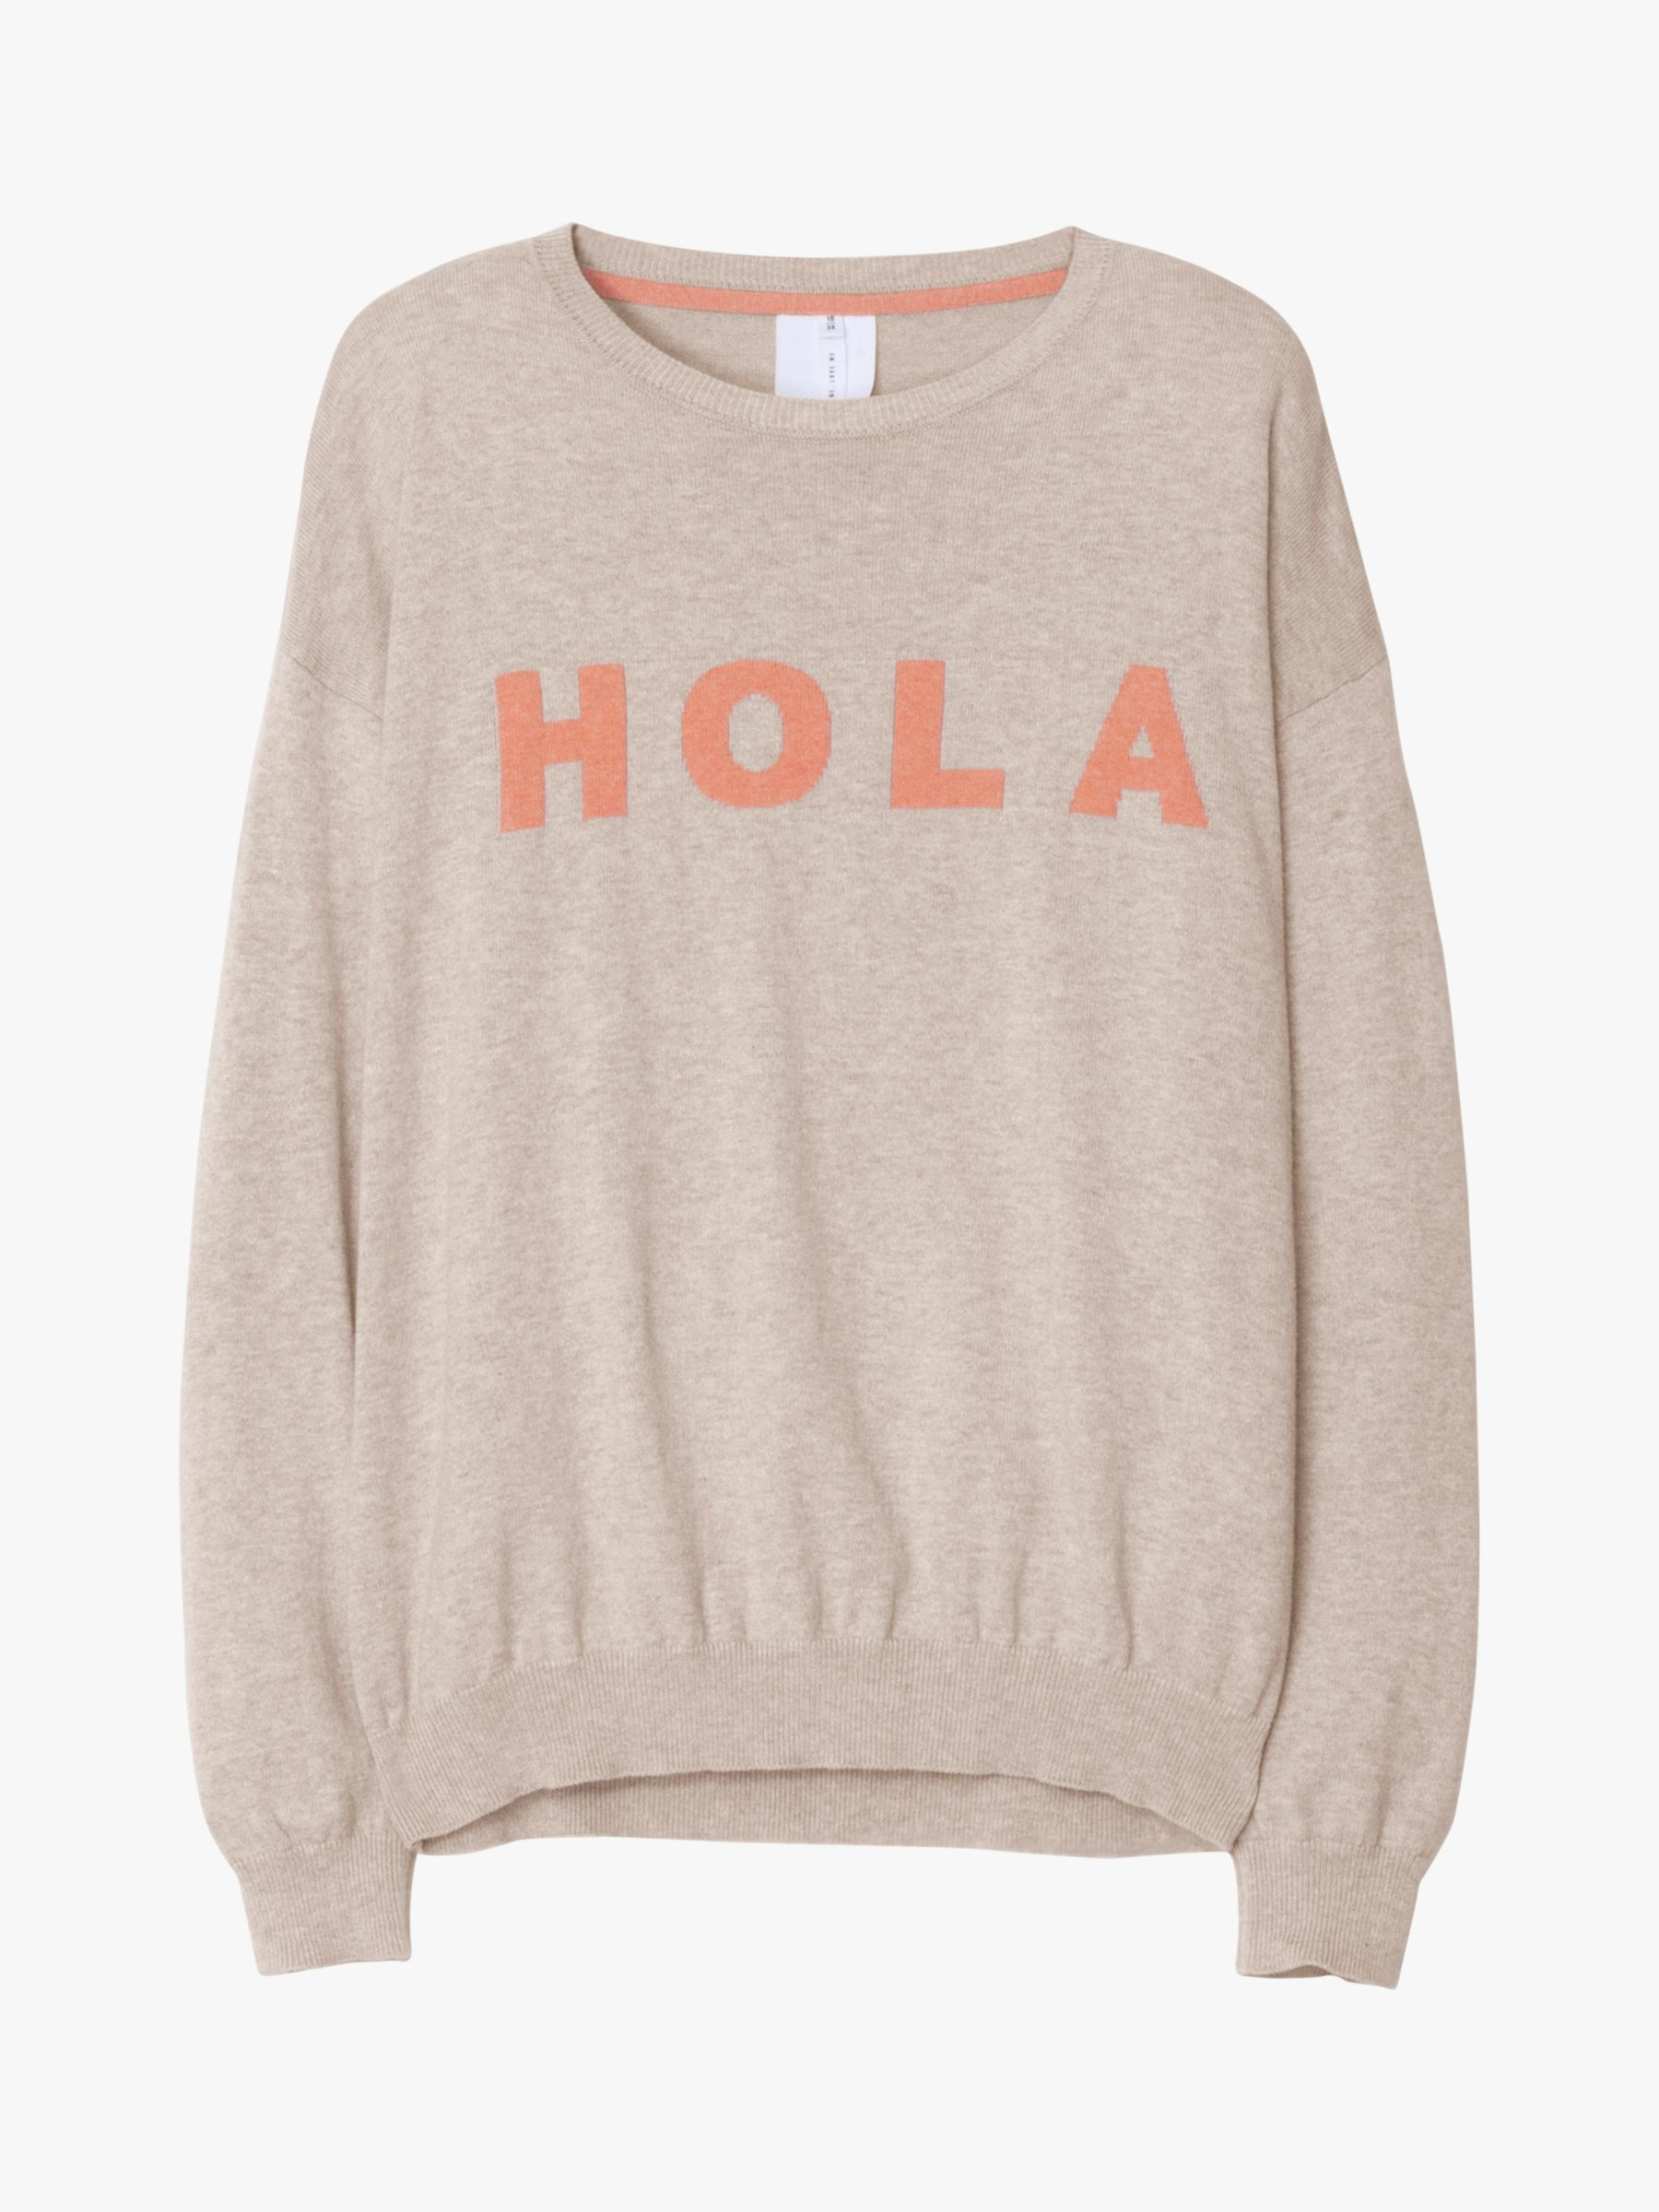 Thought Hola Organic Cotton Slogan Jumper, Vanilla Cream